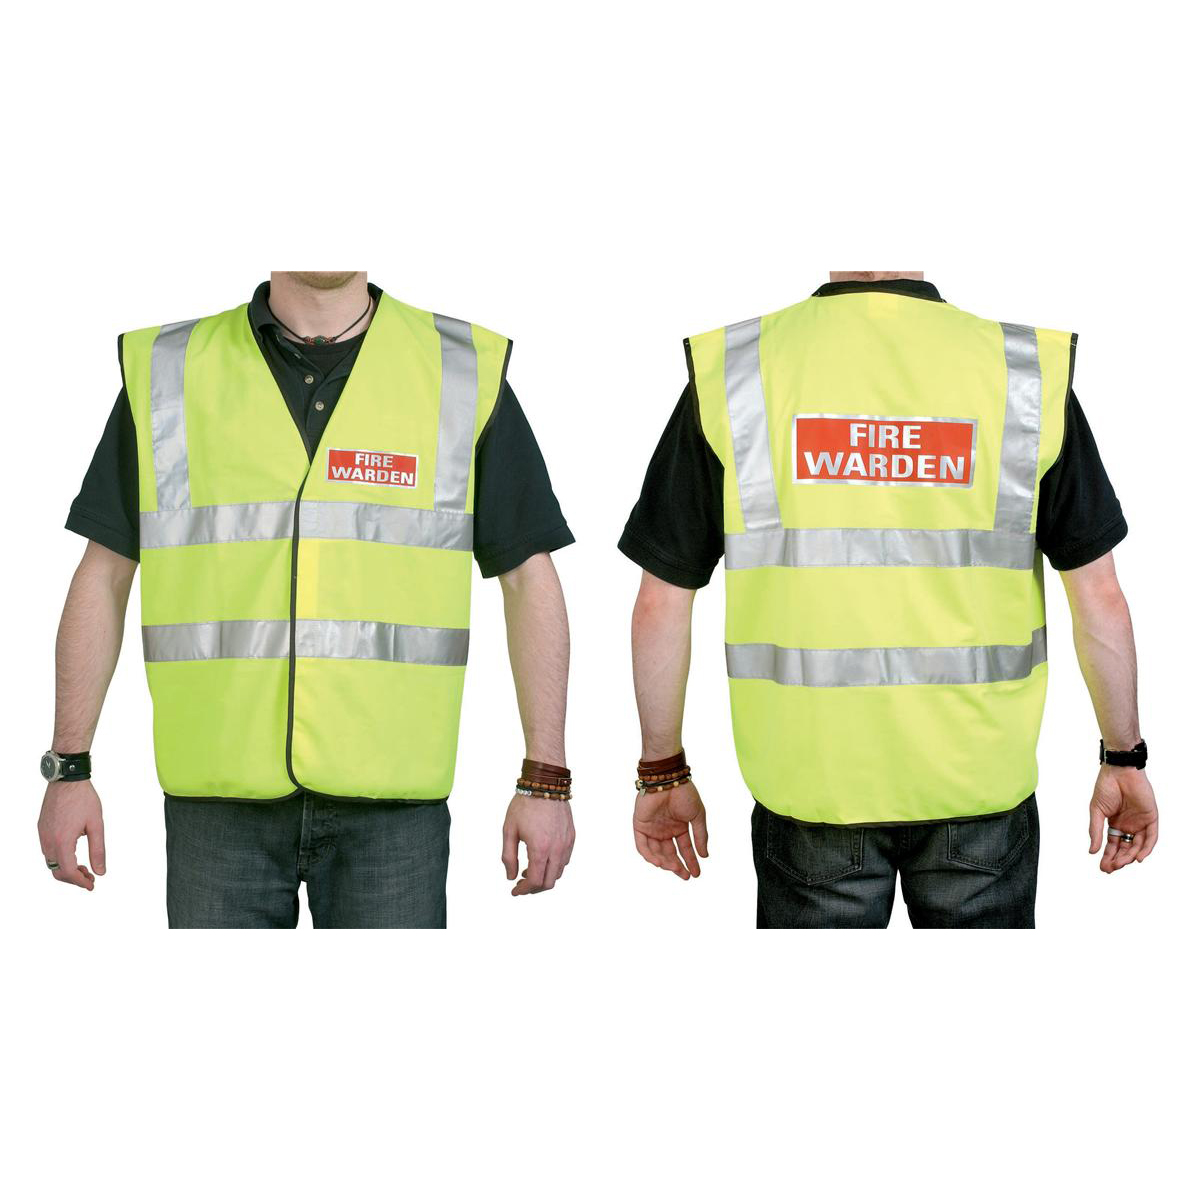 Bodywarmers Fire Warden Vest High Visibility Yellow Vest Extra Large Ref WG30106